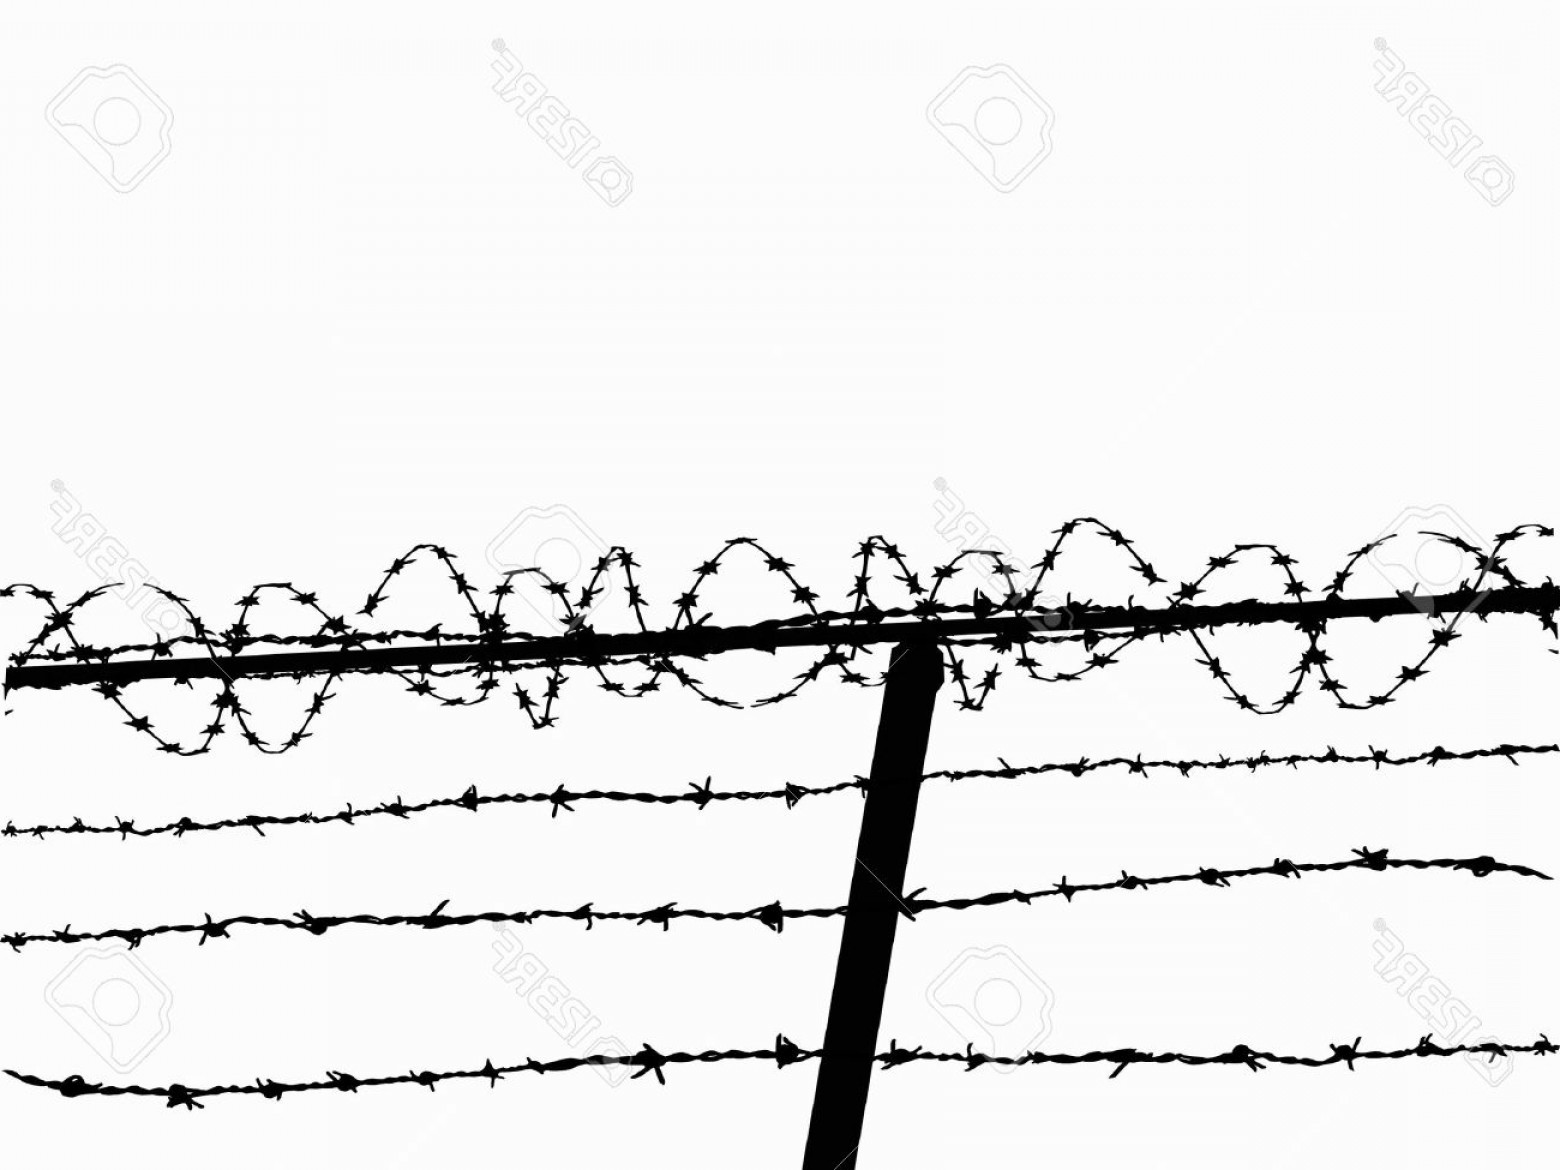 TIF Barbed Wire Vector: Photorazor Wire Fence Vector Image From A Low Angle